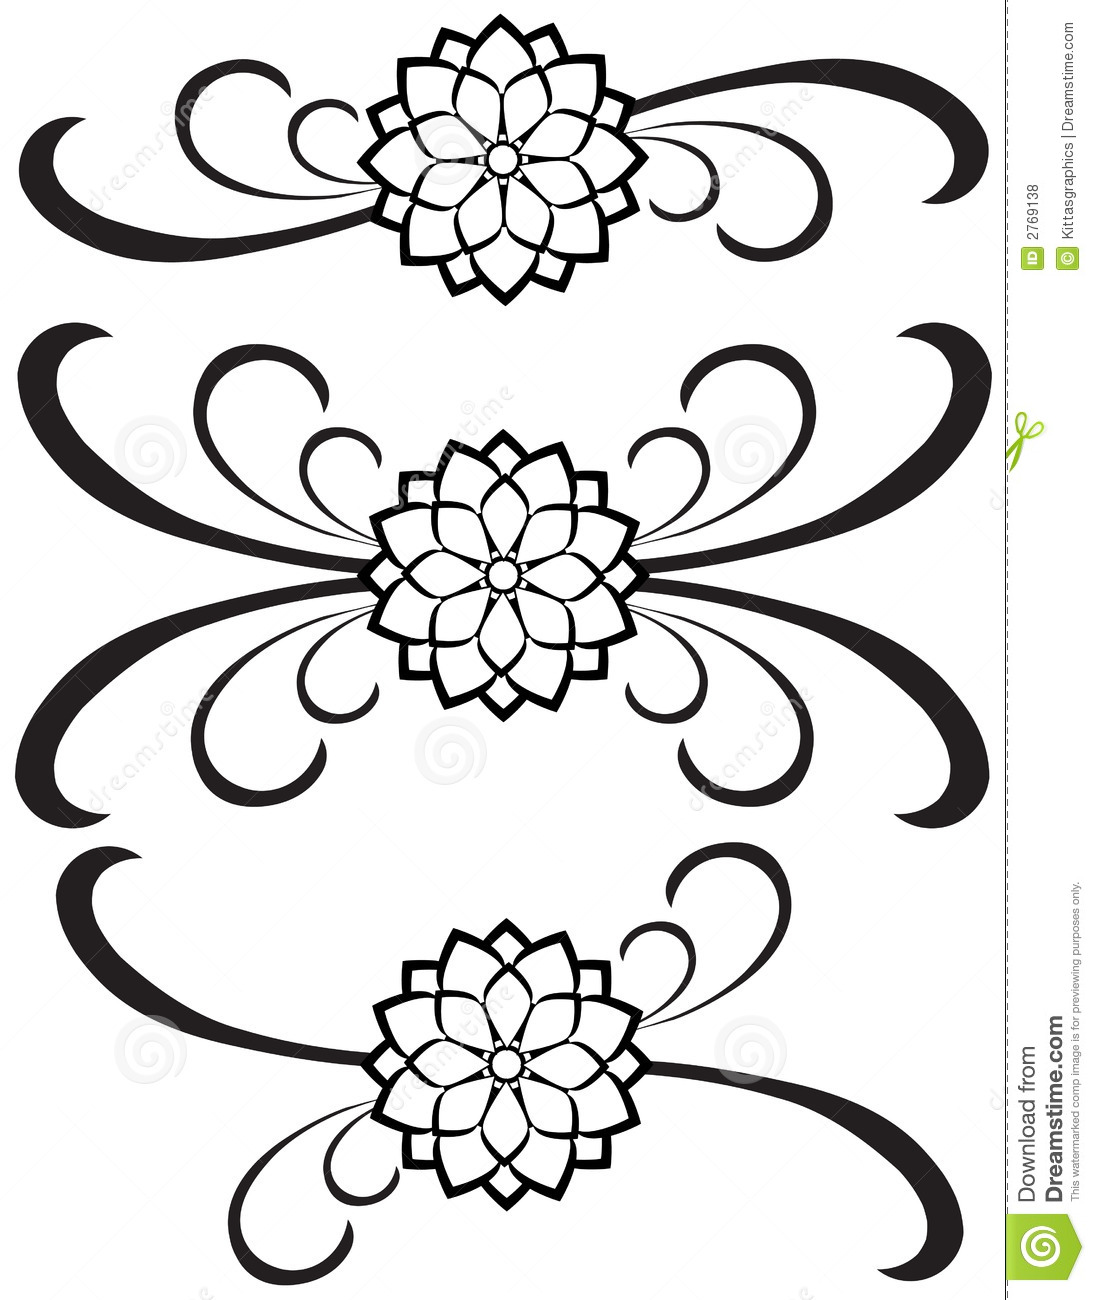 Http Www Dreamstime Com Royalty Free Stock Photos Fancy Detailed Decorations 77 Image2769138